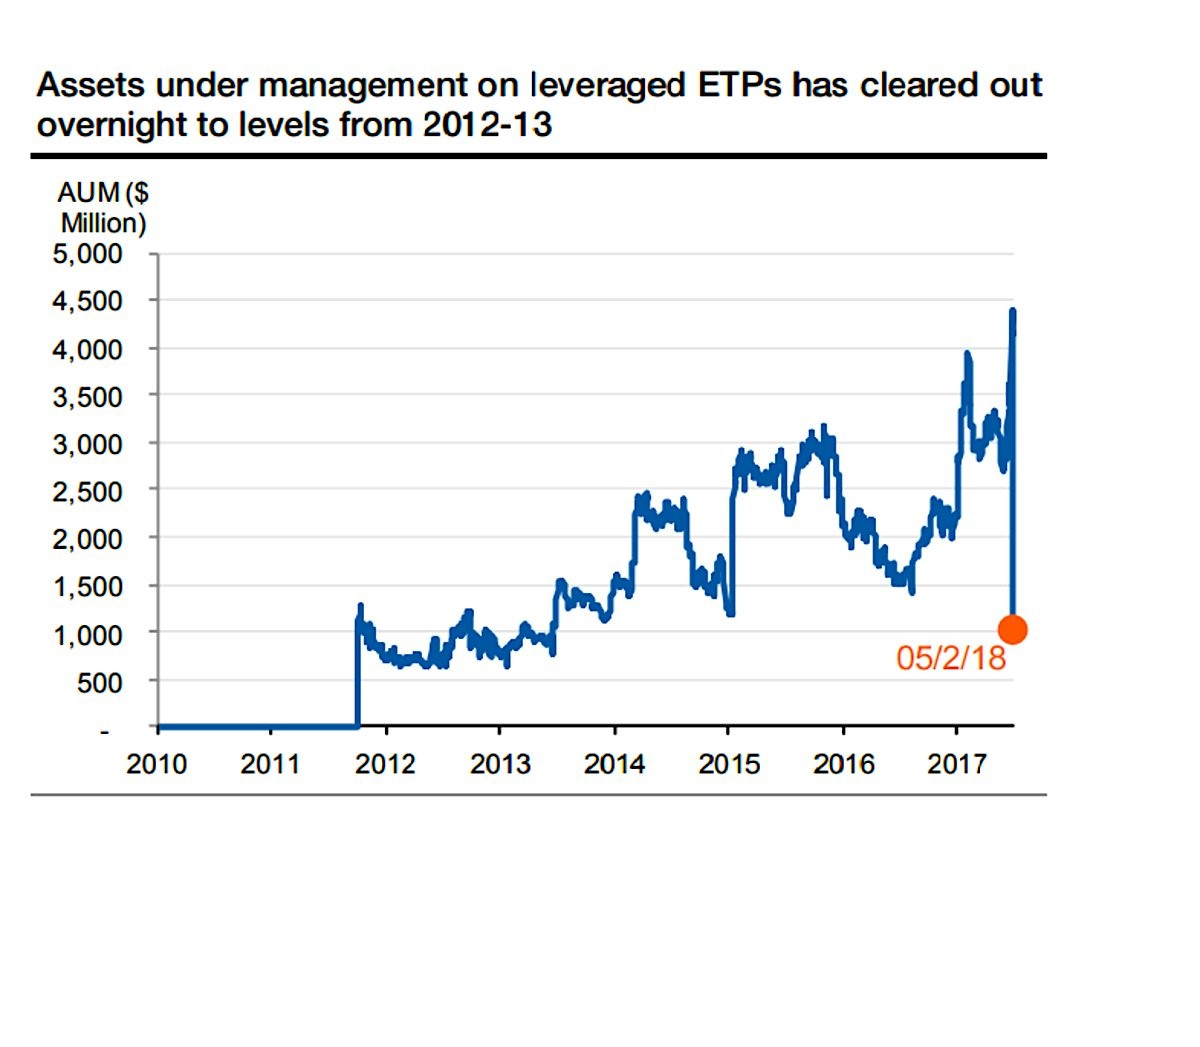 Leveraged ETPs Assets Under Management Cratered